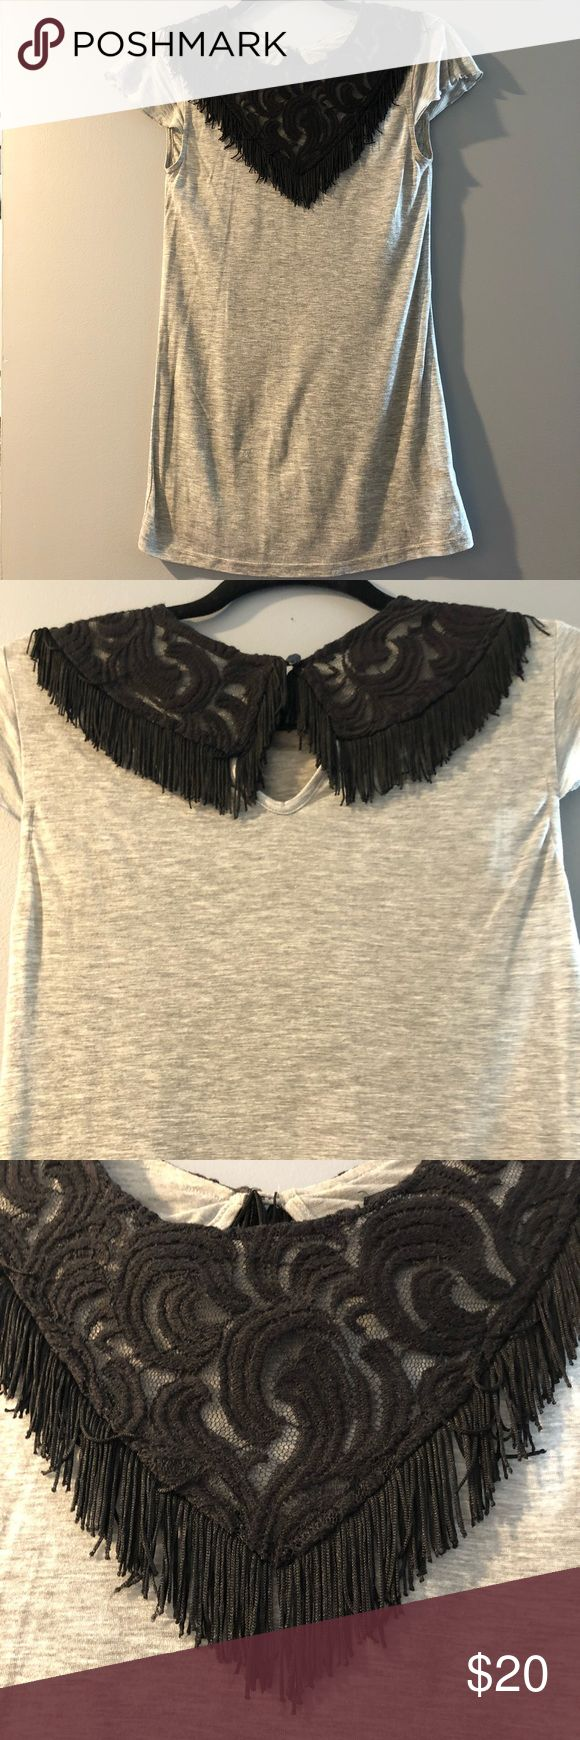 Anna Sui Embroidered Fringe Tee - Size XS Anna Sui for Target Embroidered Fringe Tee - Size XS. Very cool little tee with a fully embroidered neck with fringe. 100% Tencel. Anna Sui Tops Tees - Short Sleeve